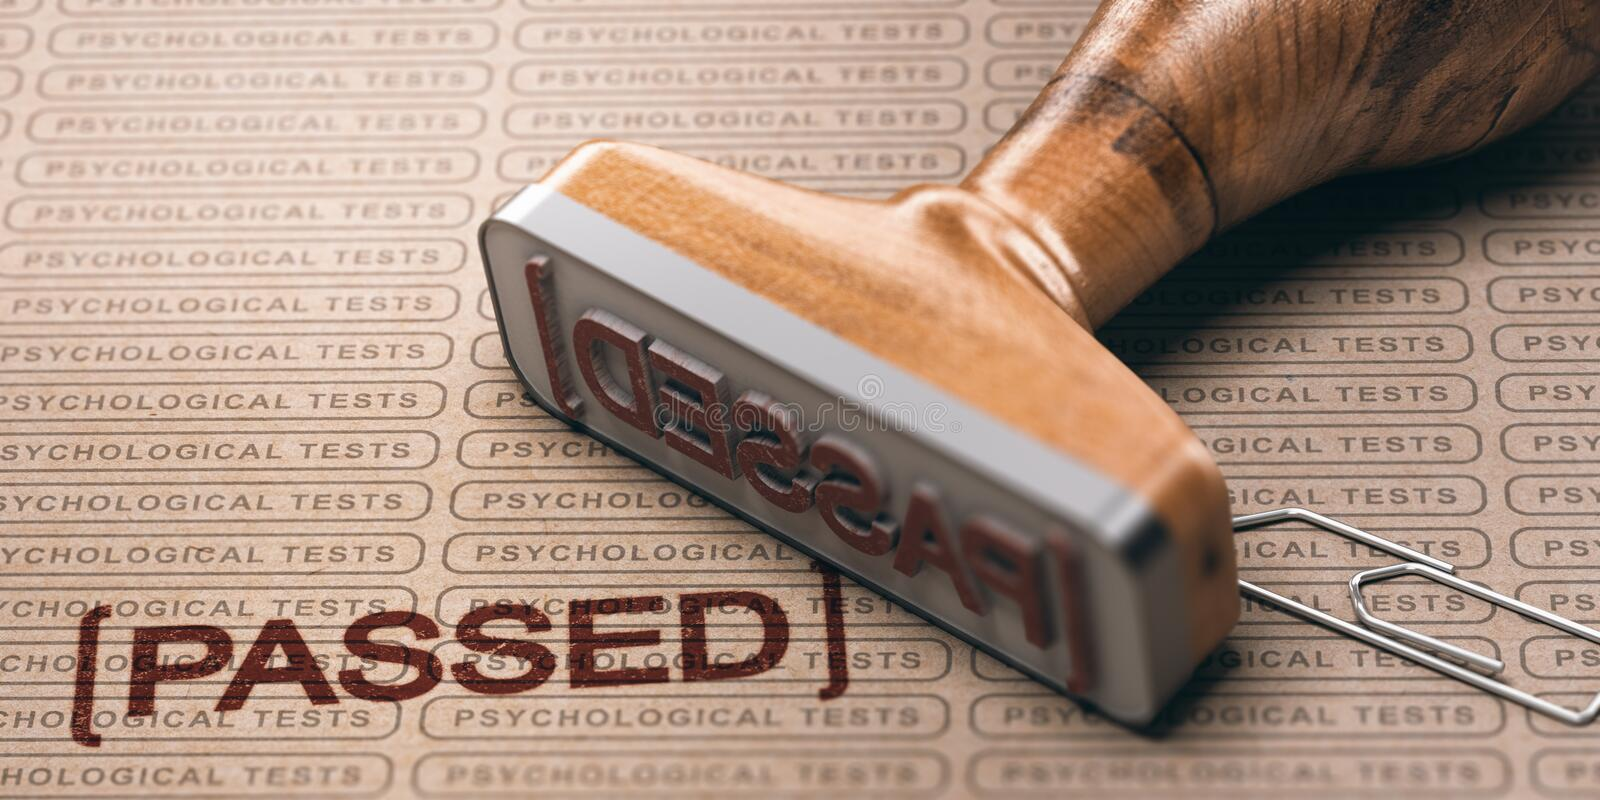 Passing a Psychological Test. 3d illustration of a rubber stamp with the text passed and a brown paper with the repeated phrase psychological test printed on it vector illustration